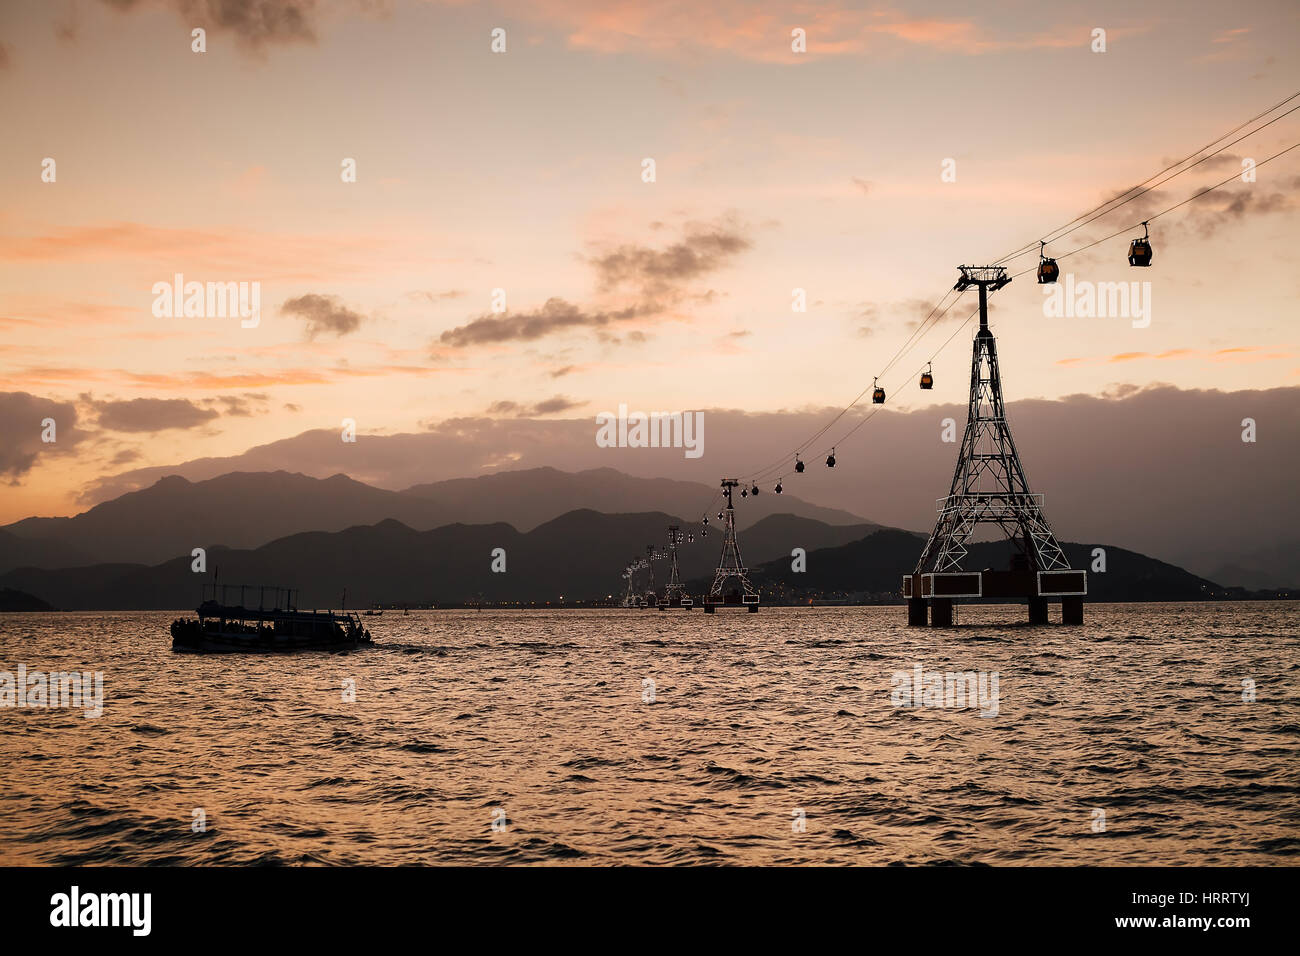 picturesque cable way at sunset in Vietnam Nha Trang Vinpearl - Stock Image